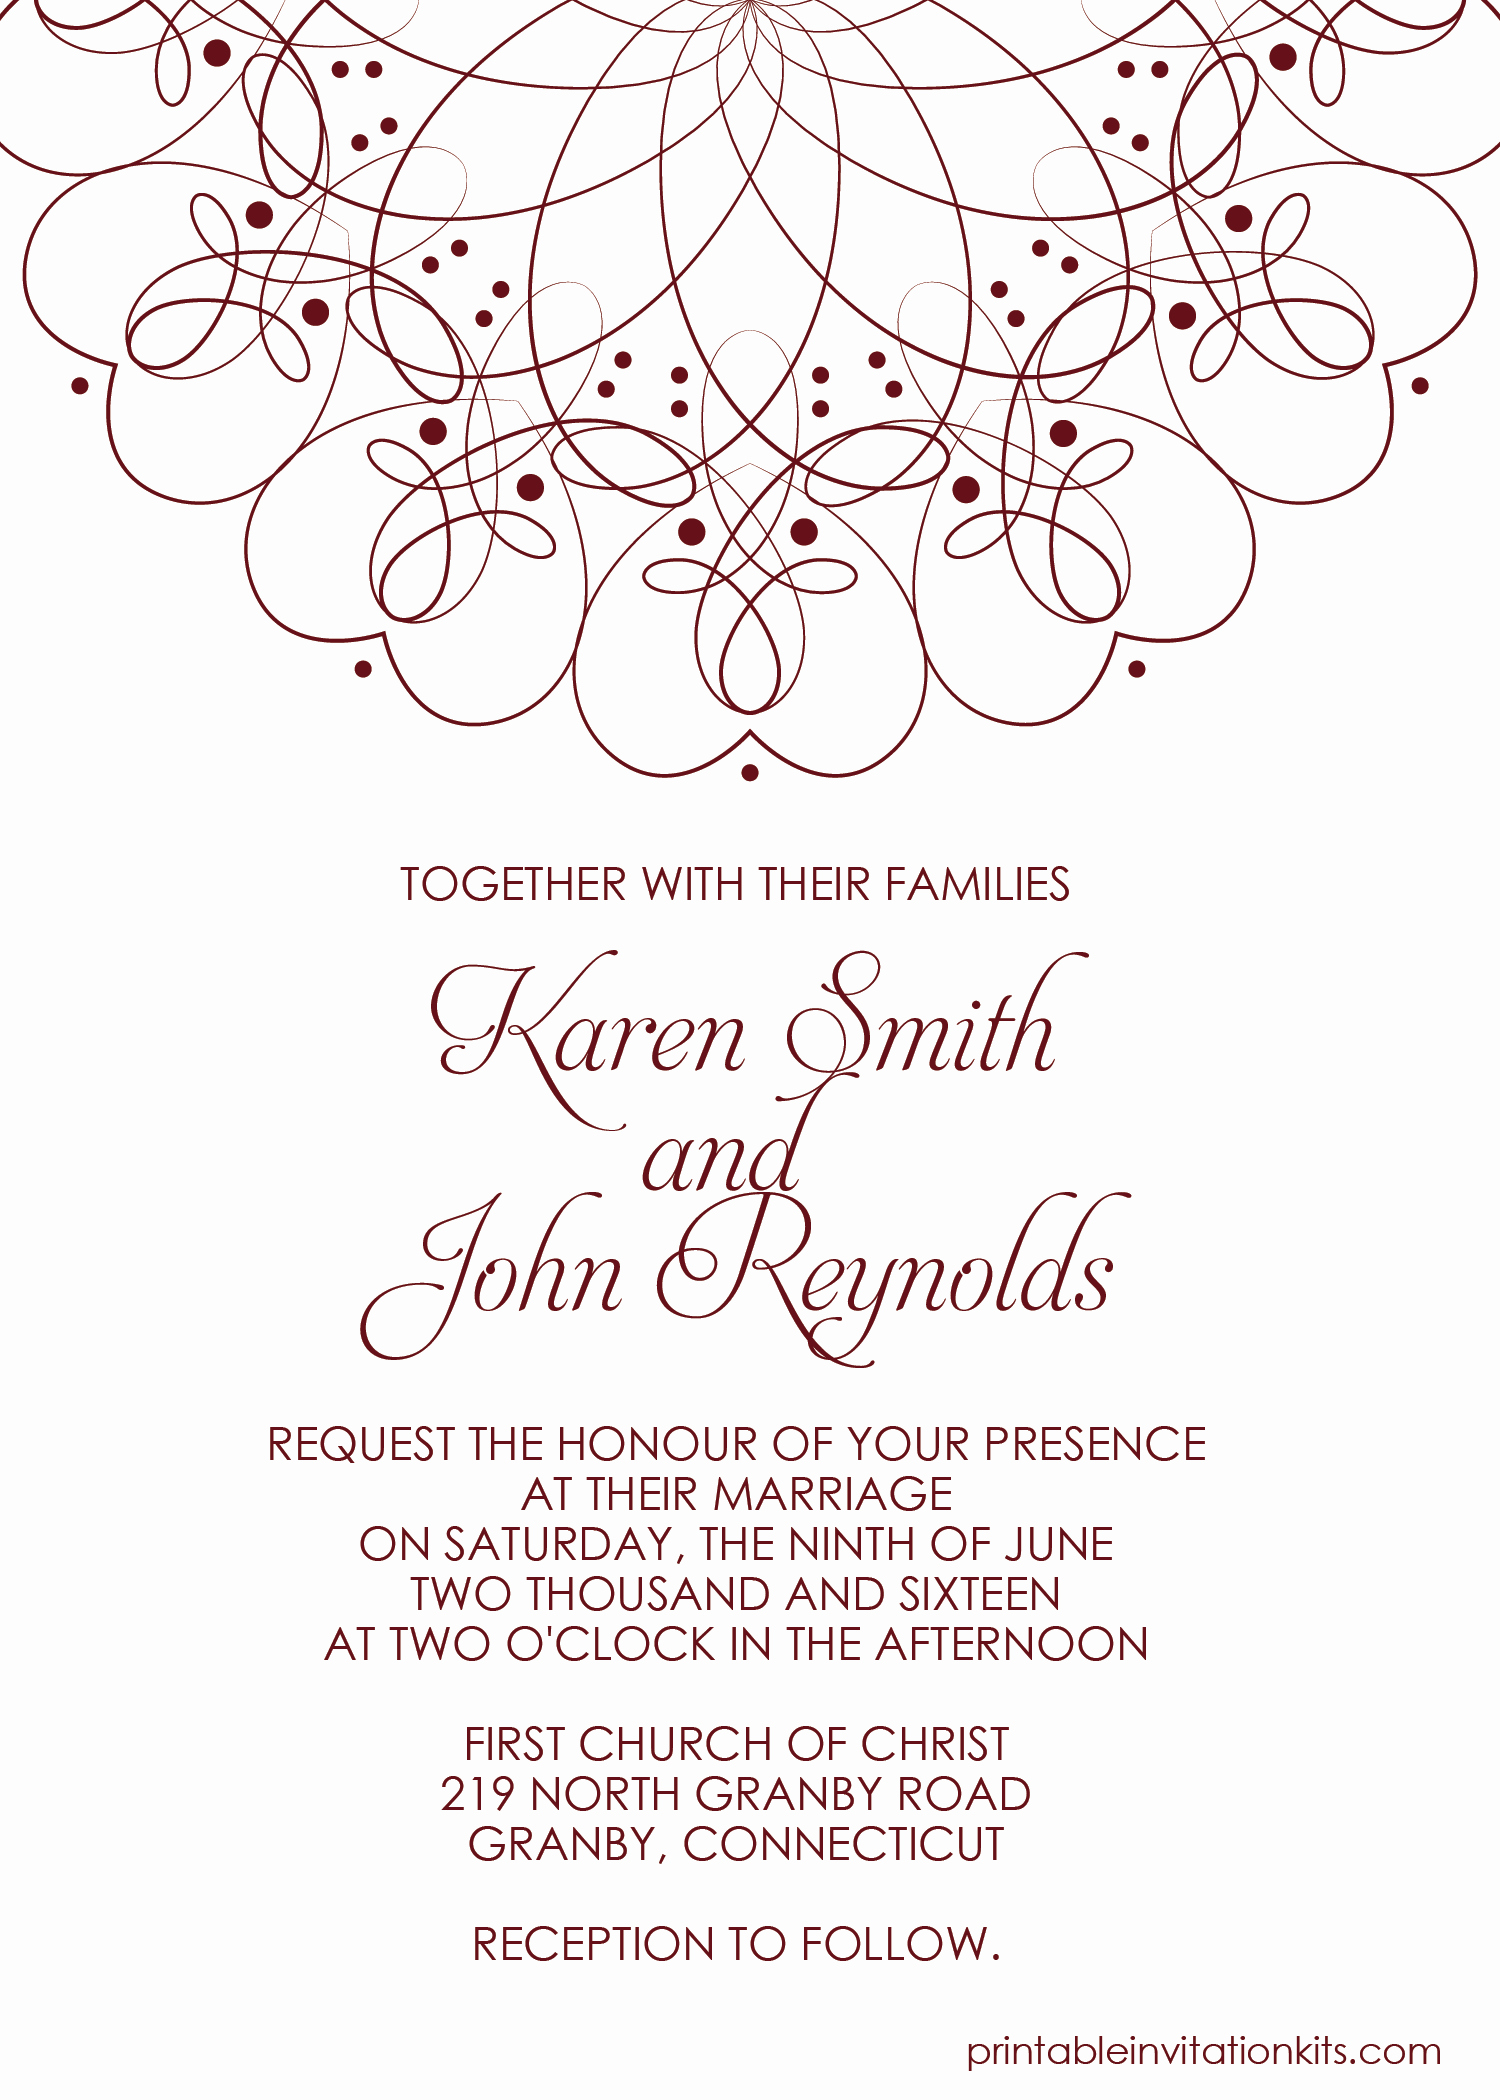 Wedding Invitations List Template Best Of Spiral Border Invitation Free Pdf Template for Weddings